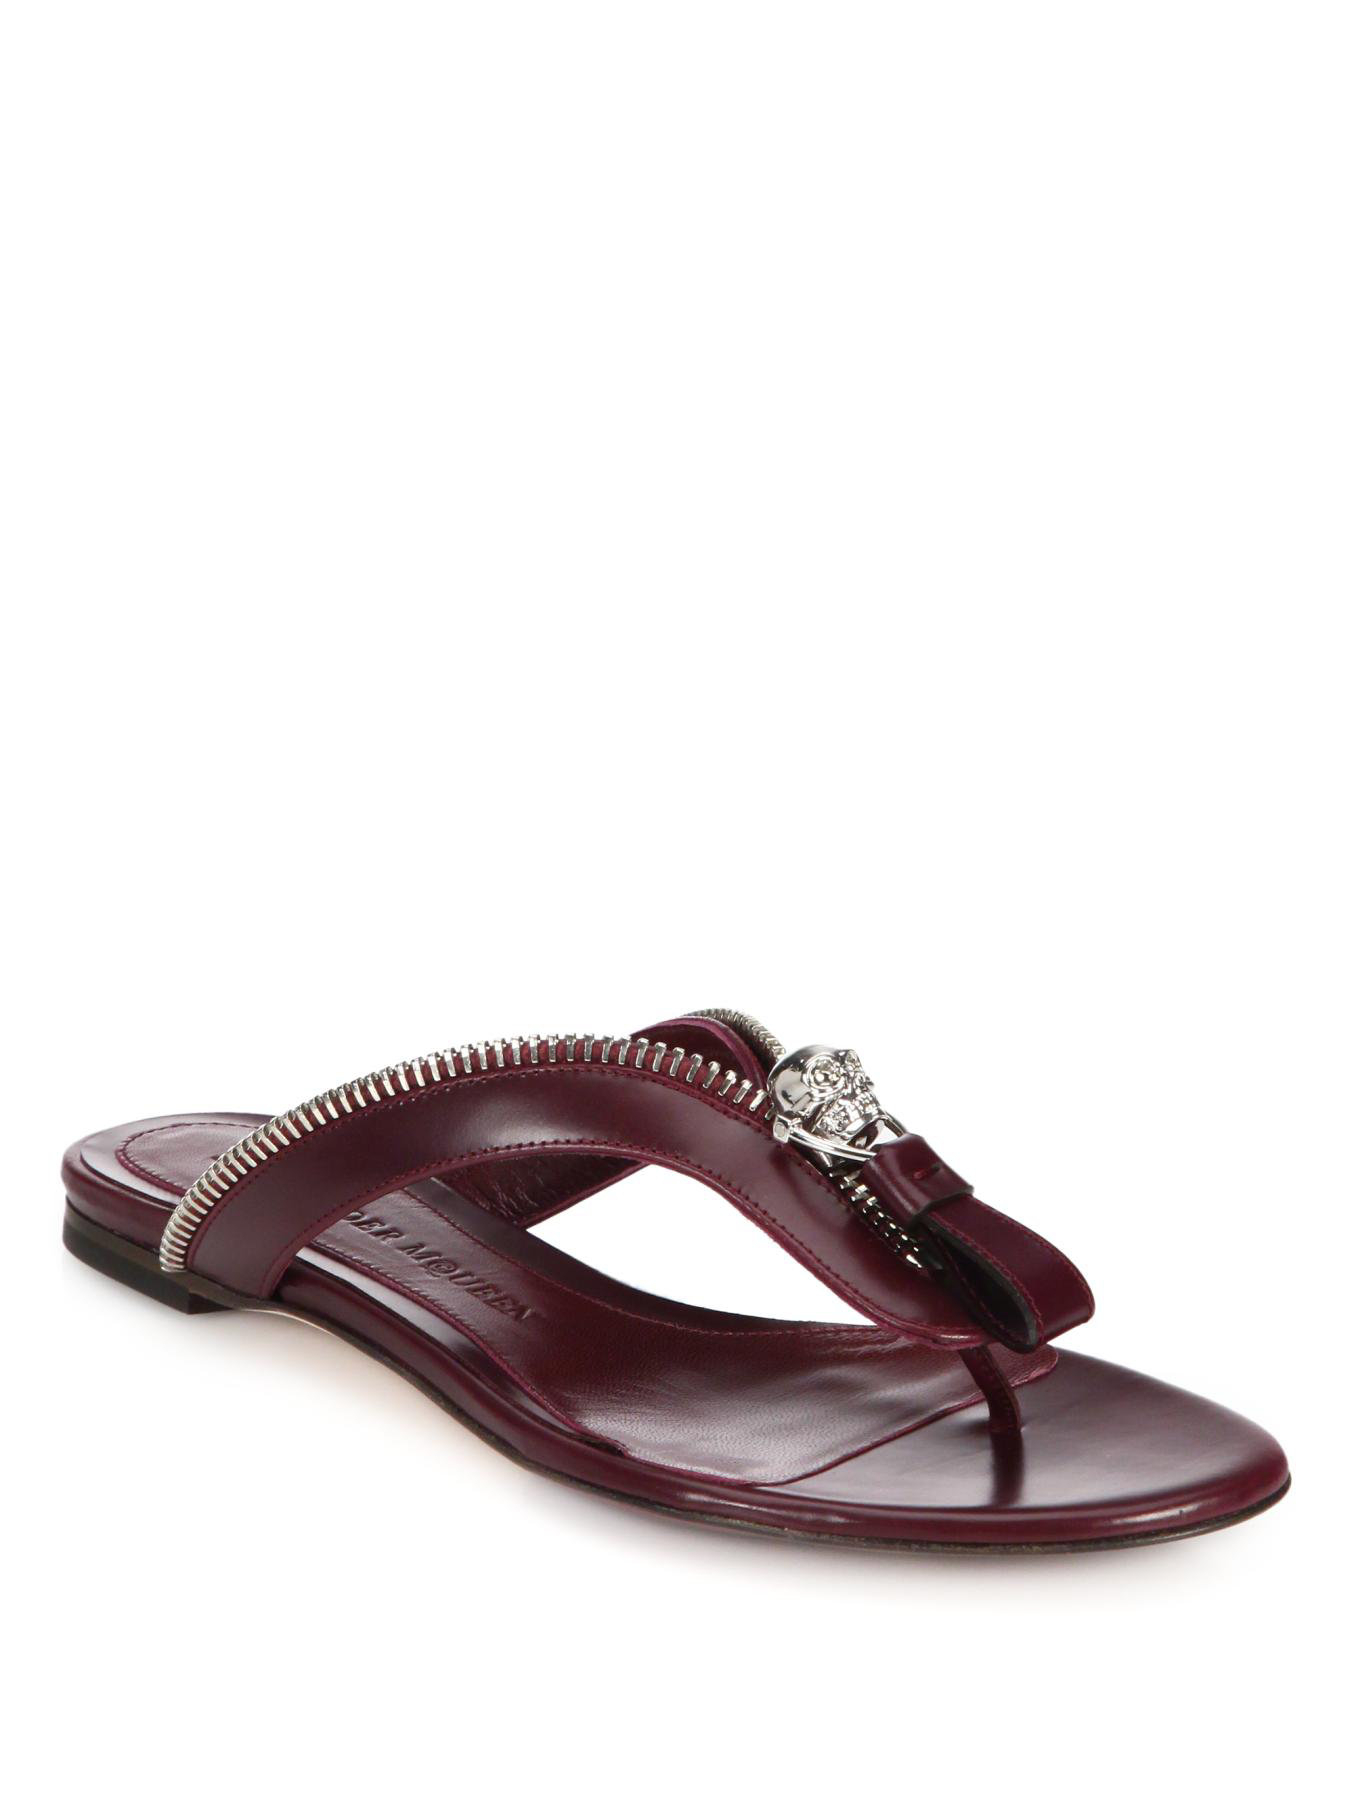 outlet 2014 new newest Alexander McQueen Embossed Leather Sandals view online cheap low shipping XEWUnKzOsk